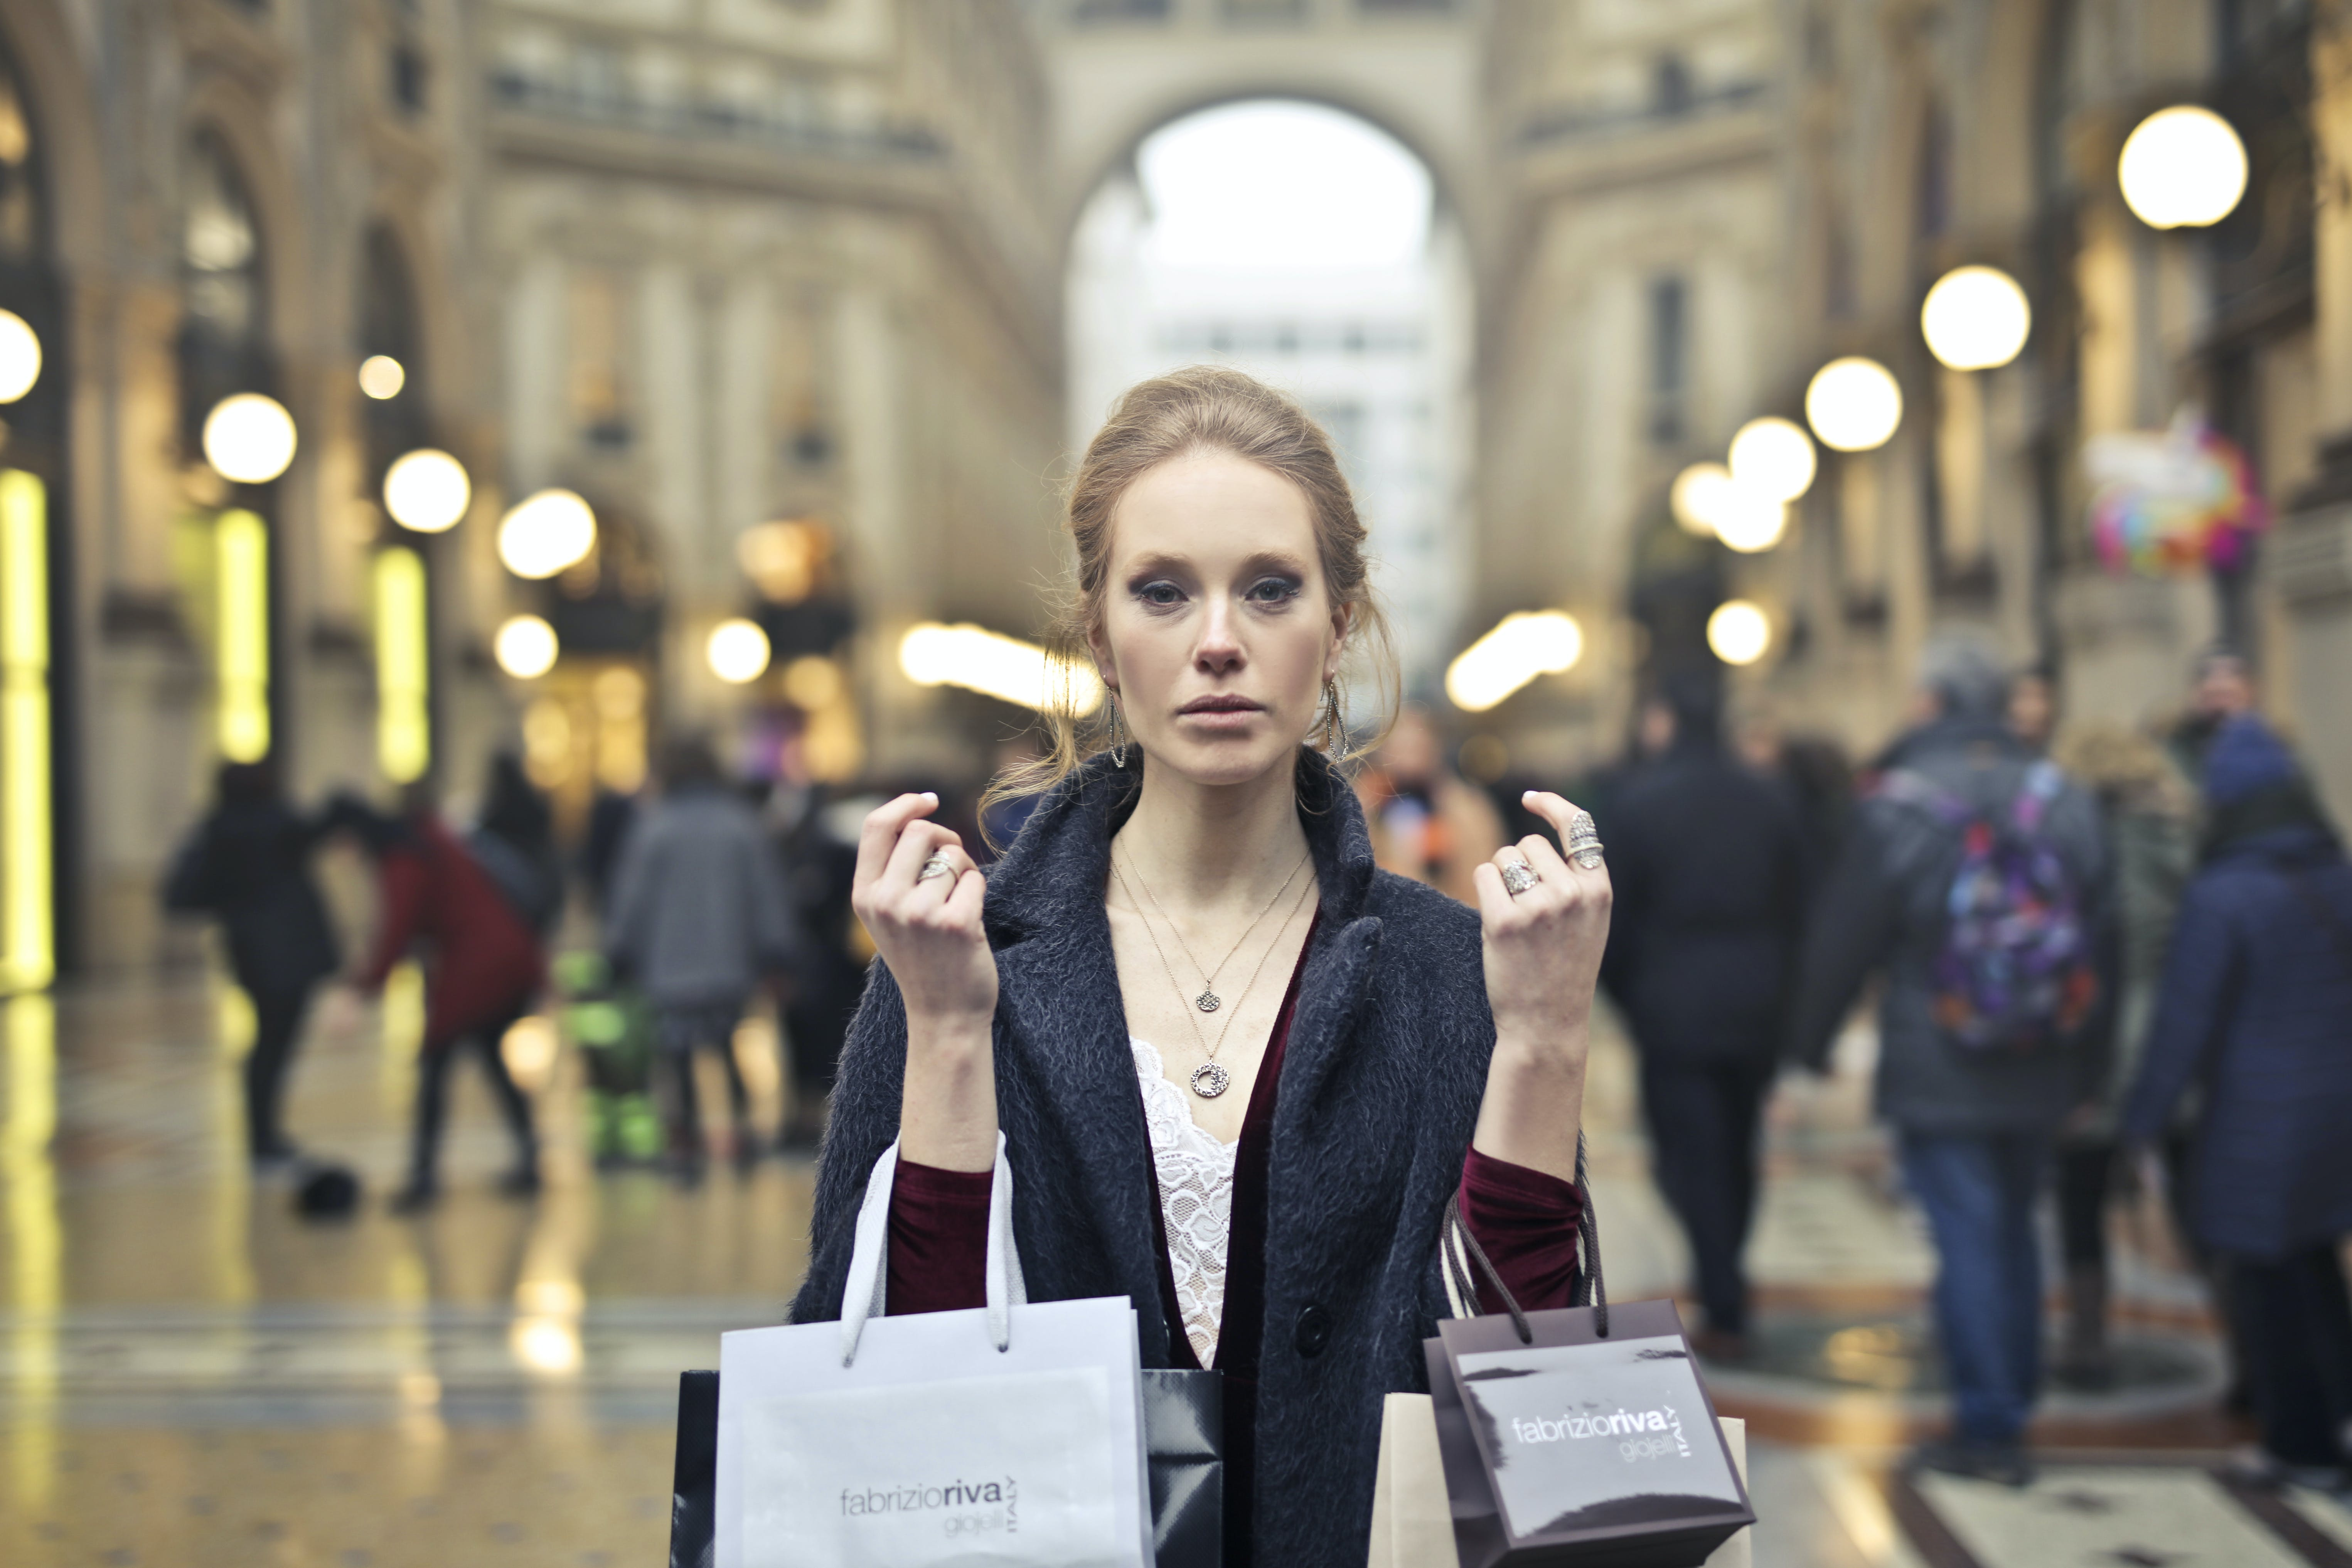 Woman Wearing Black Coat Holding Assorted-color Shopping Bags on Building